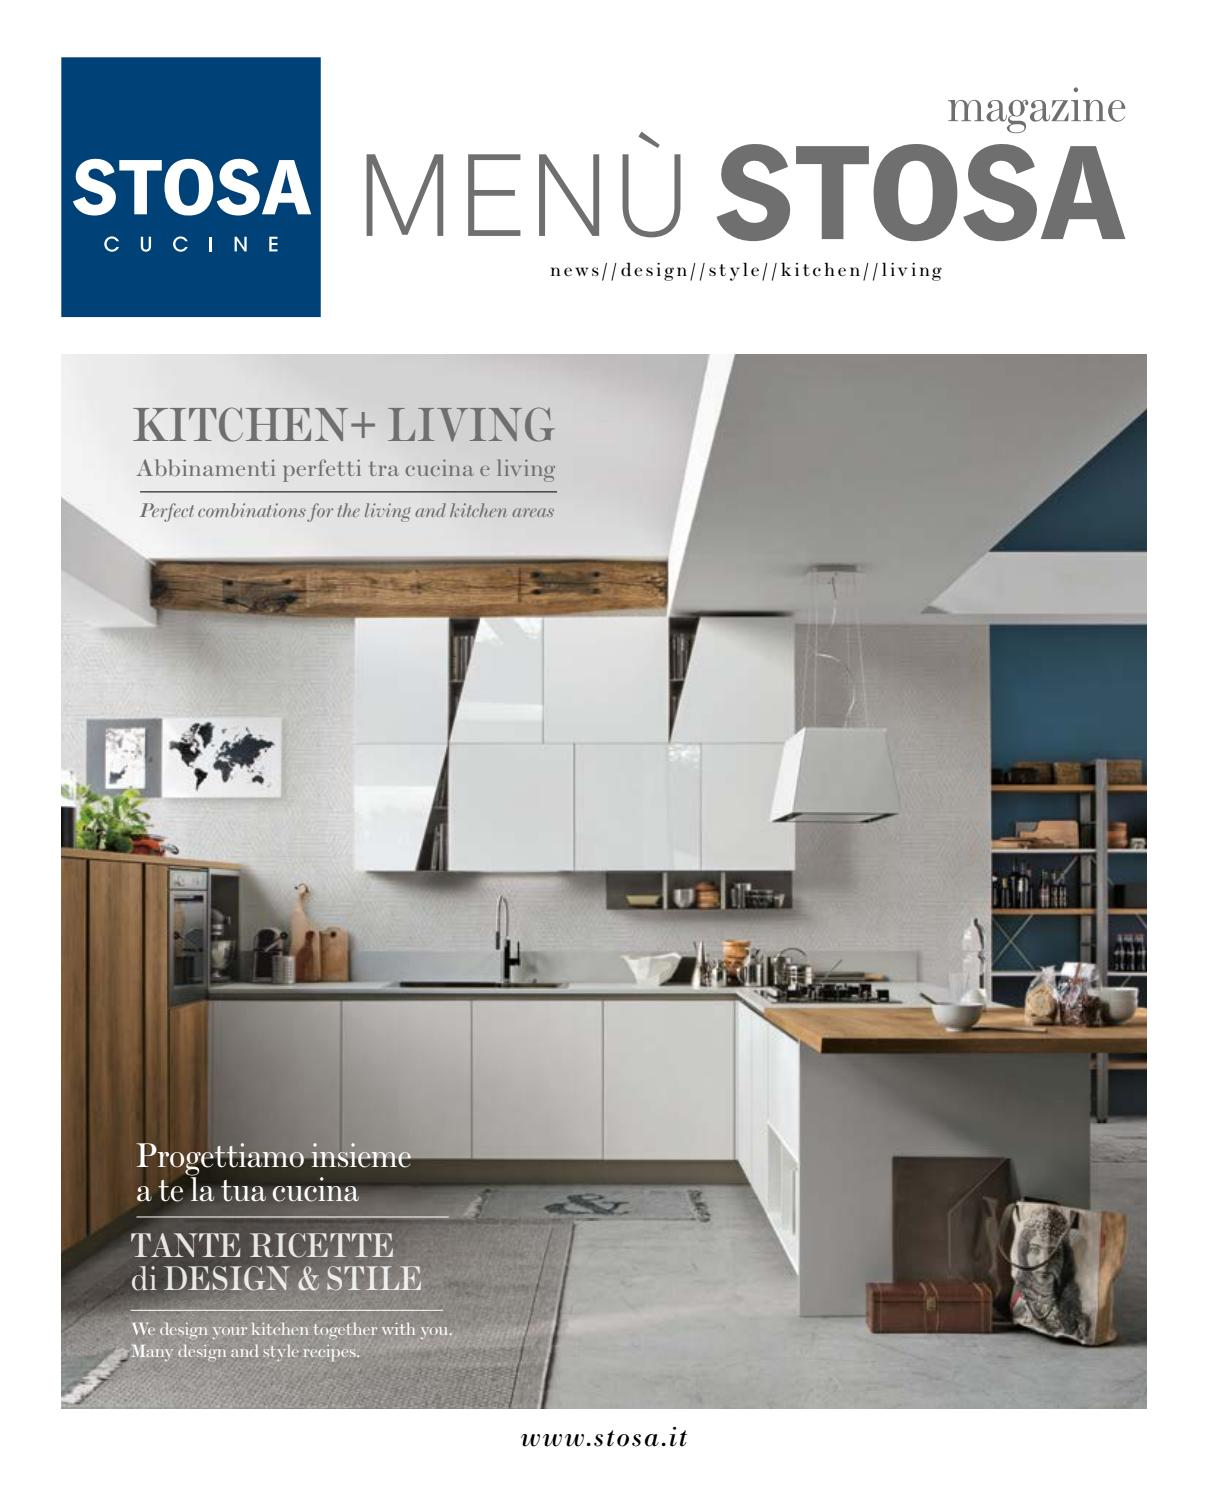 Menù Stosa 2017 by STOSA Cucine - issuu